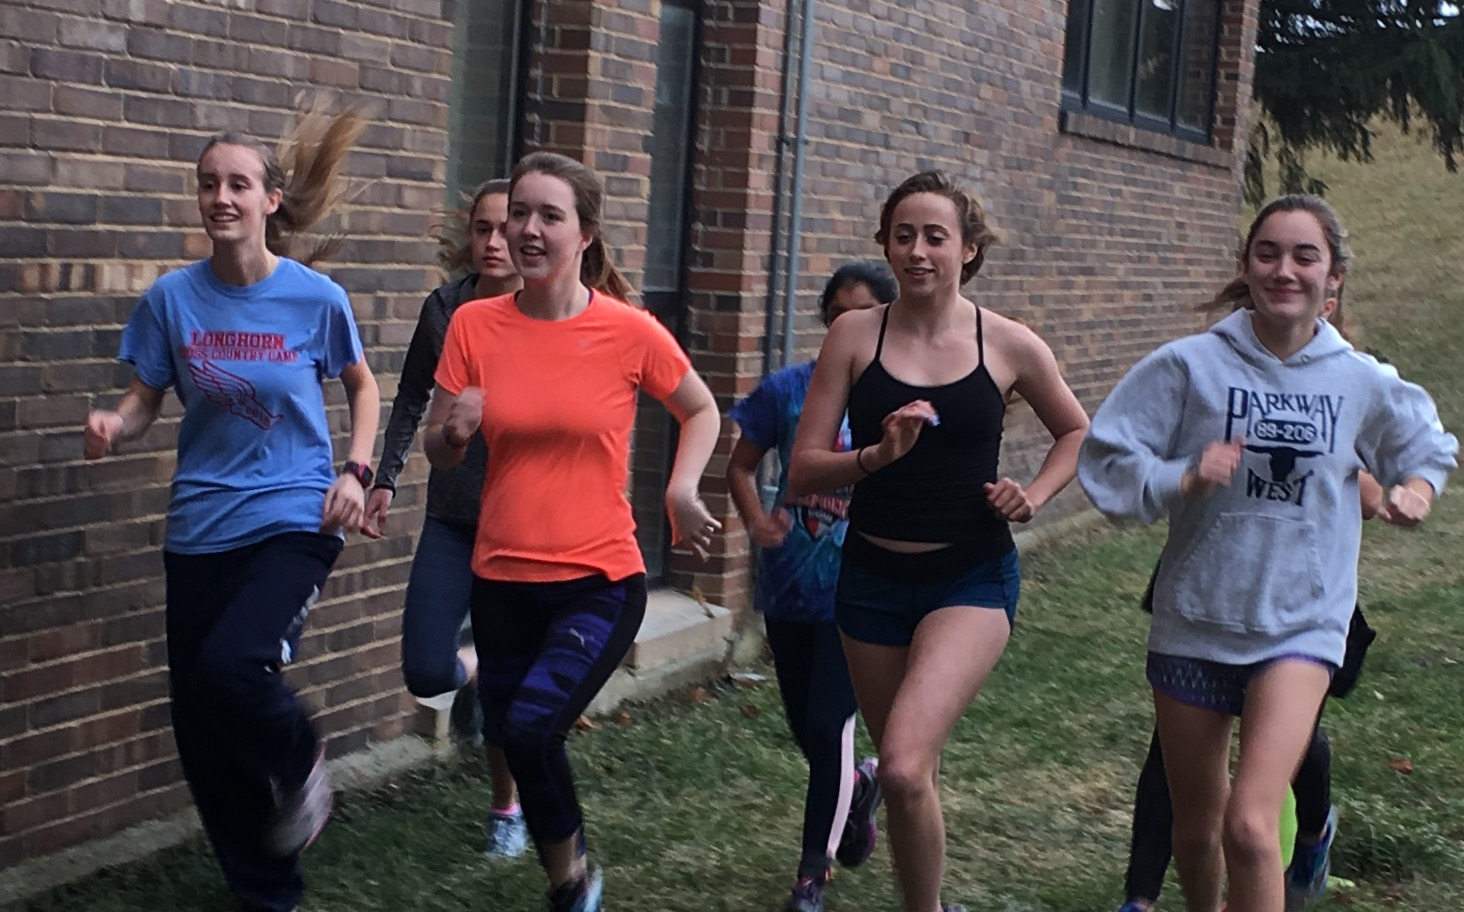 """Running their warm-up lap, sophomore Laura Rein, senior Jane Fuller, junior Natalie Butler and junior Chloe Hershenow get ready to hit the roads. After warm-up girls split into groups and completed their workout. """"Winter running helps motivate me to run on the coldest days because I know I will have these girls by my side to do it with,"""" Hershenow said."""